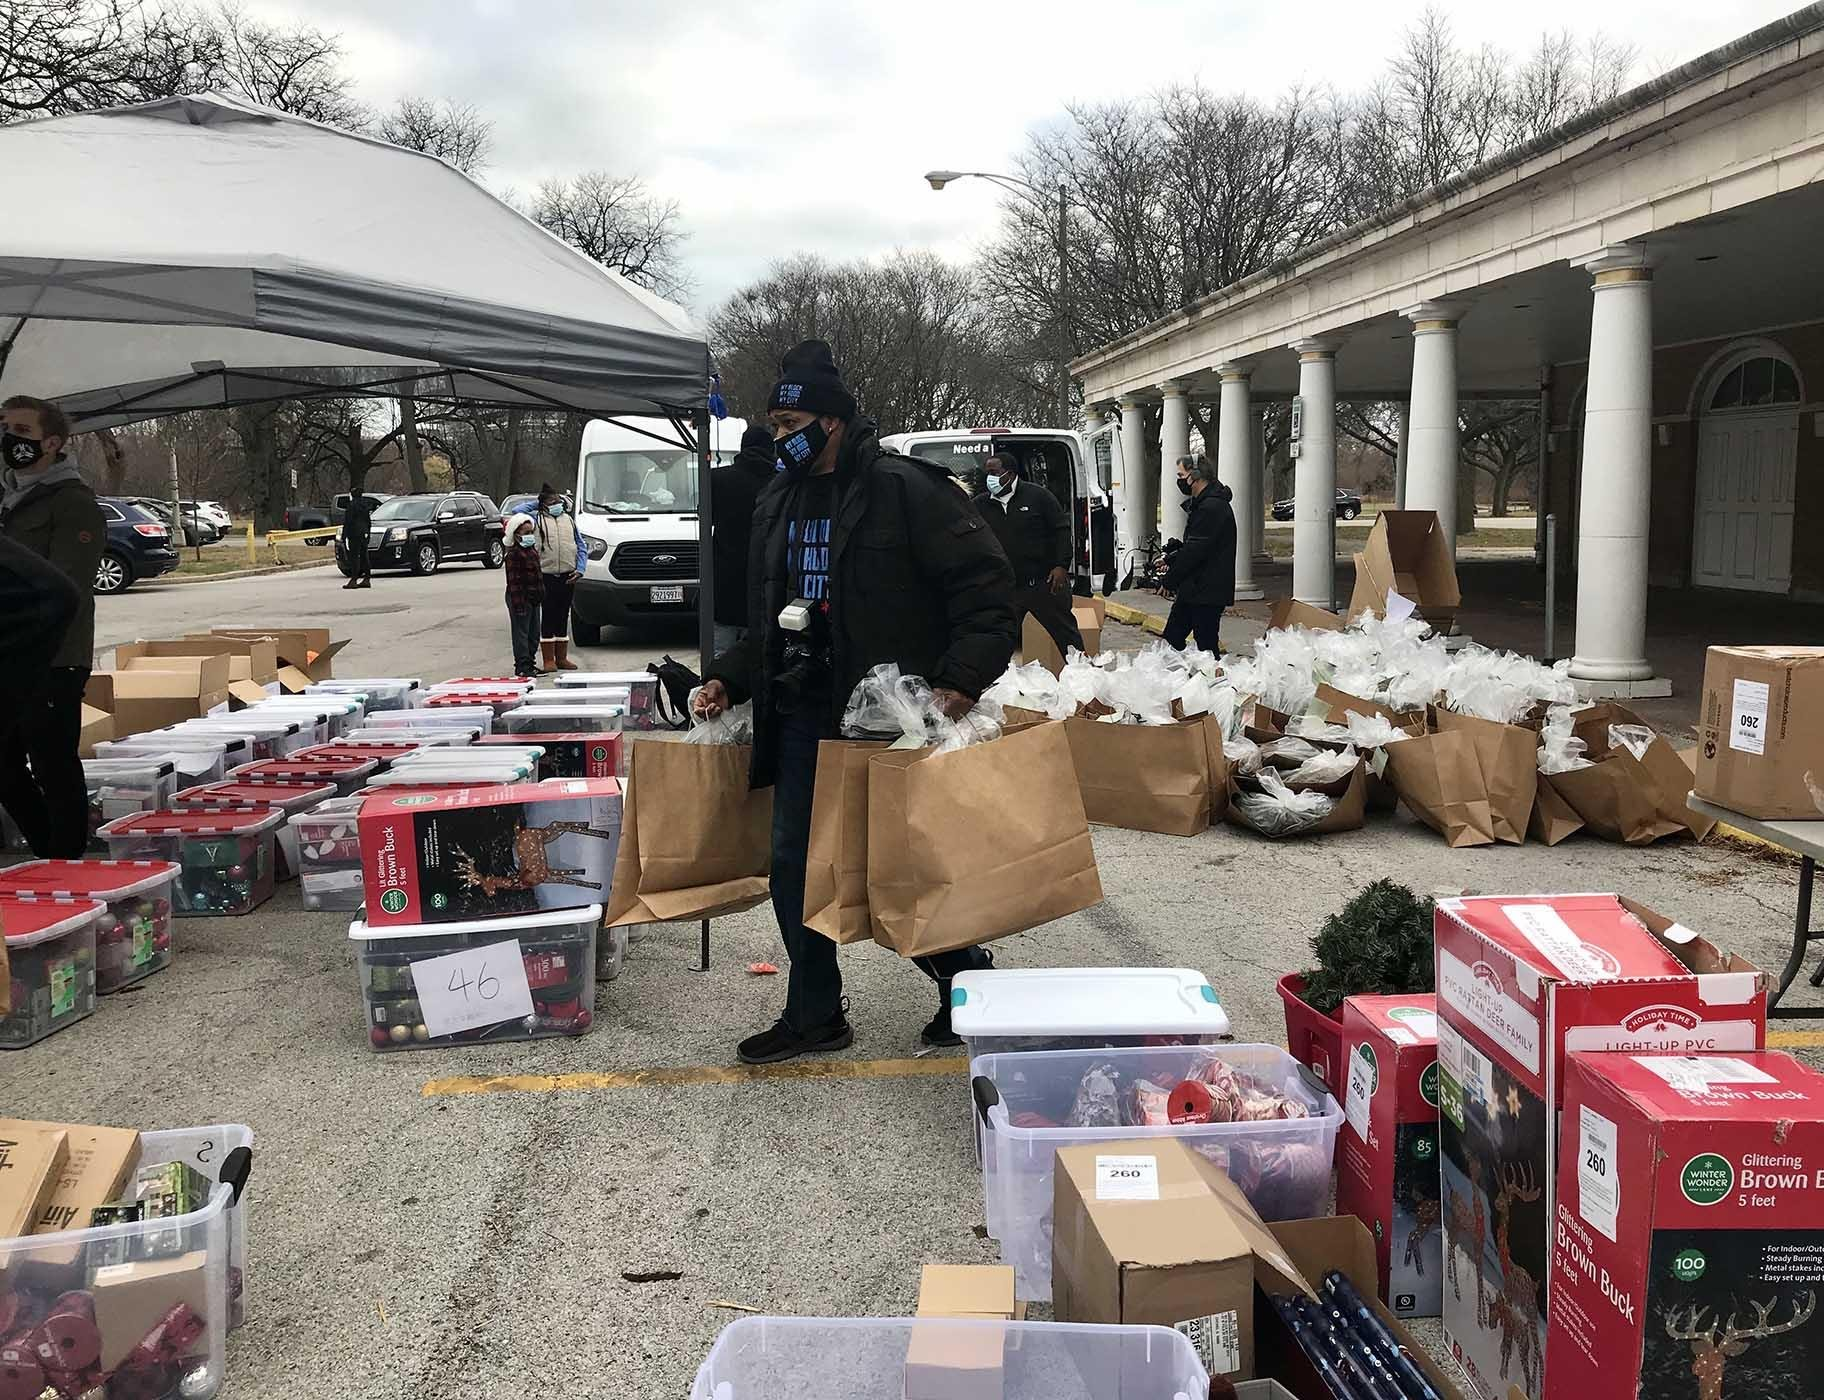 Volunteers distribute a mass of holiday lights, wreaths, ornaments and other decor. (Ariel Parrella-Aureli / WTTW News)